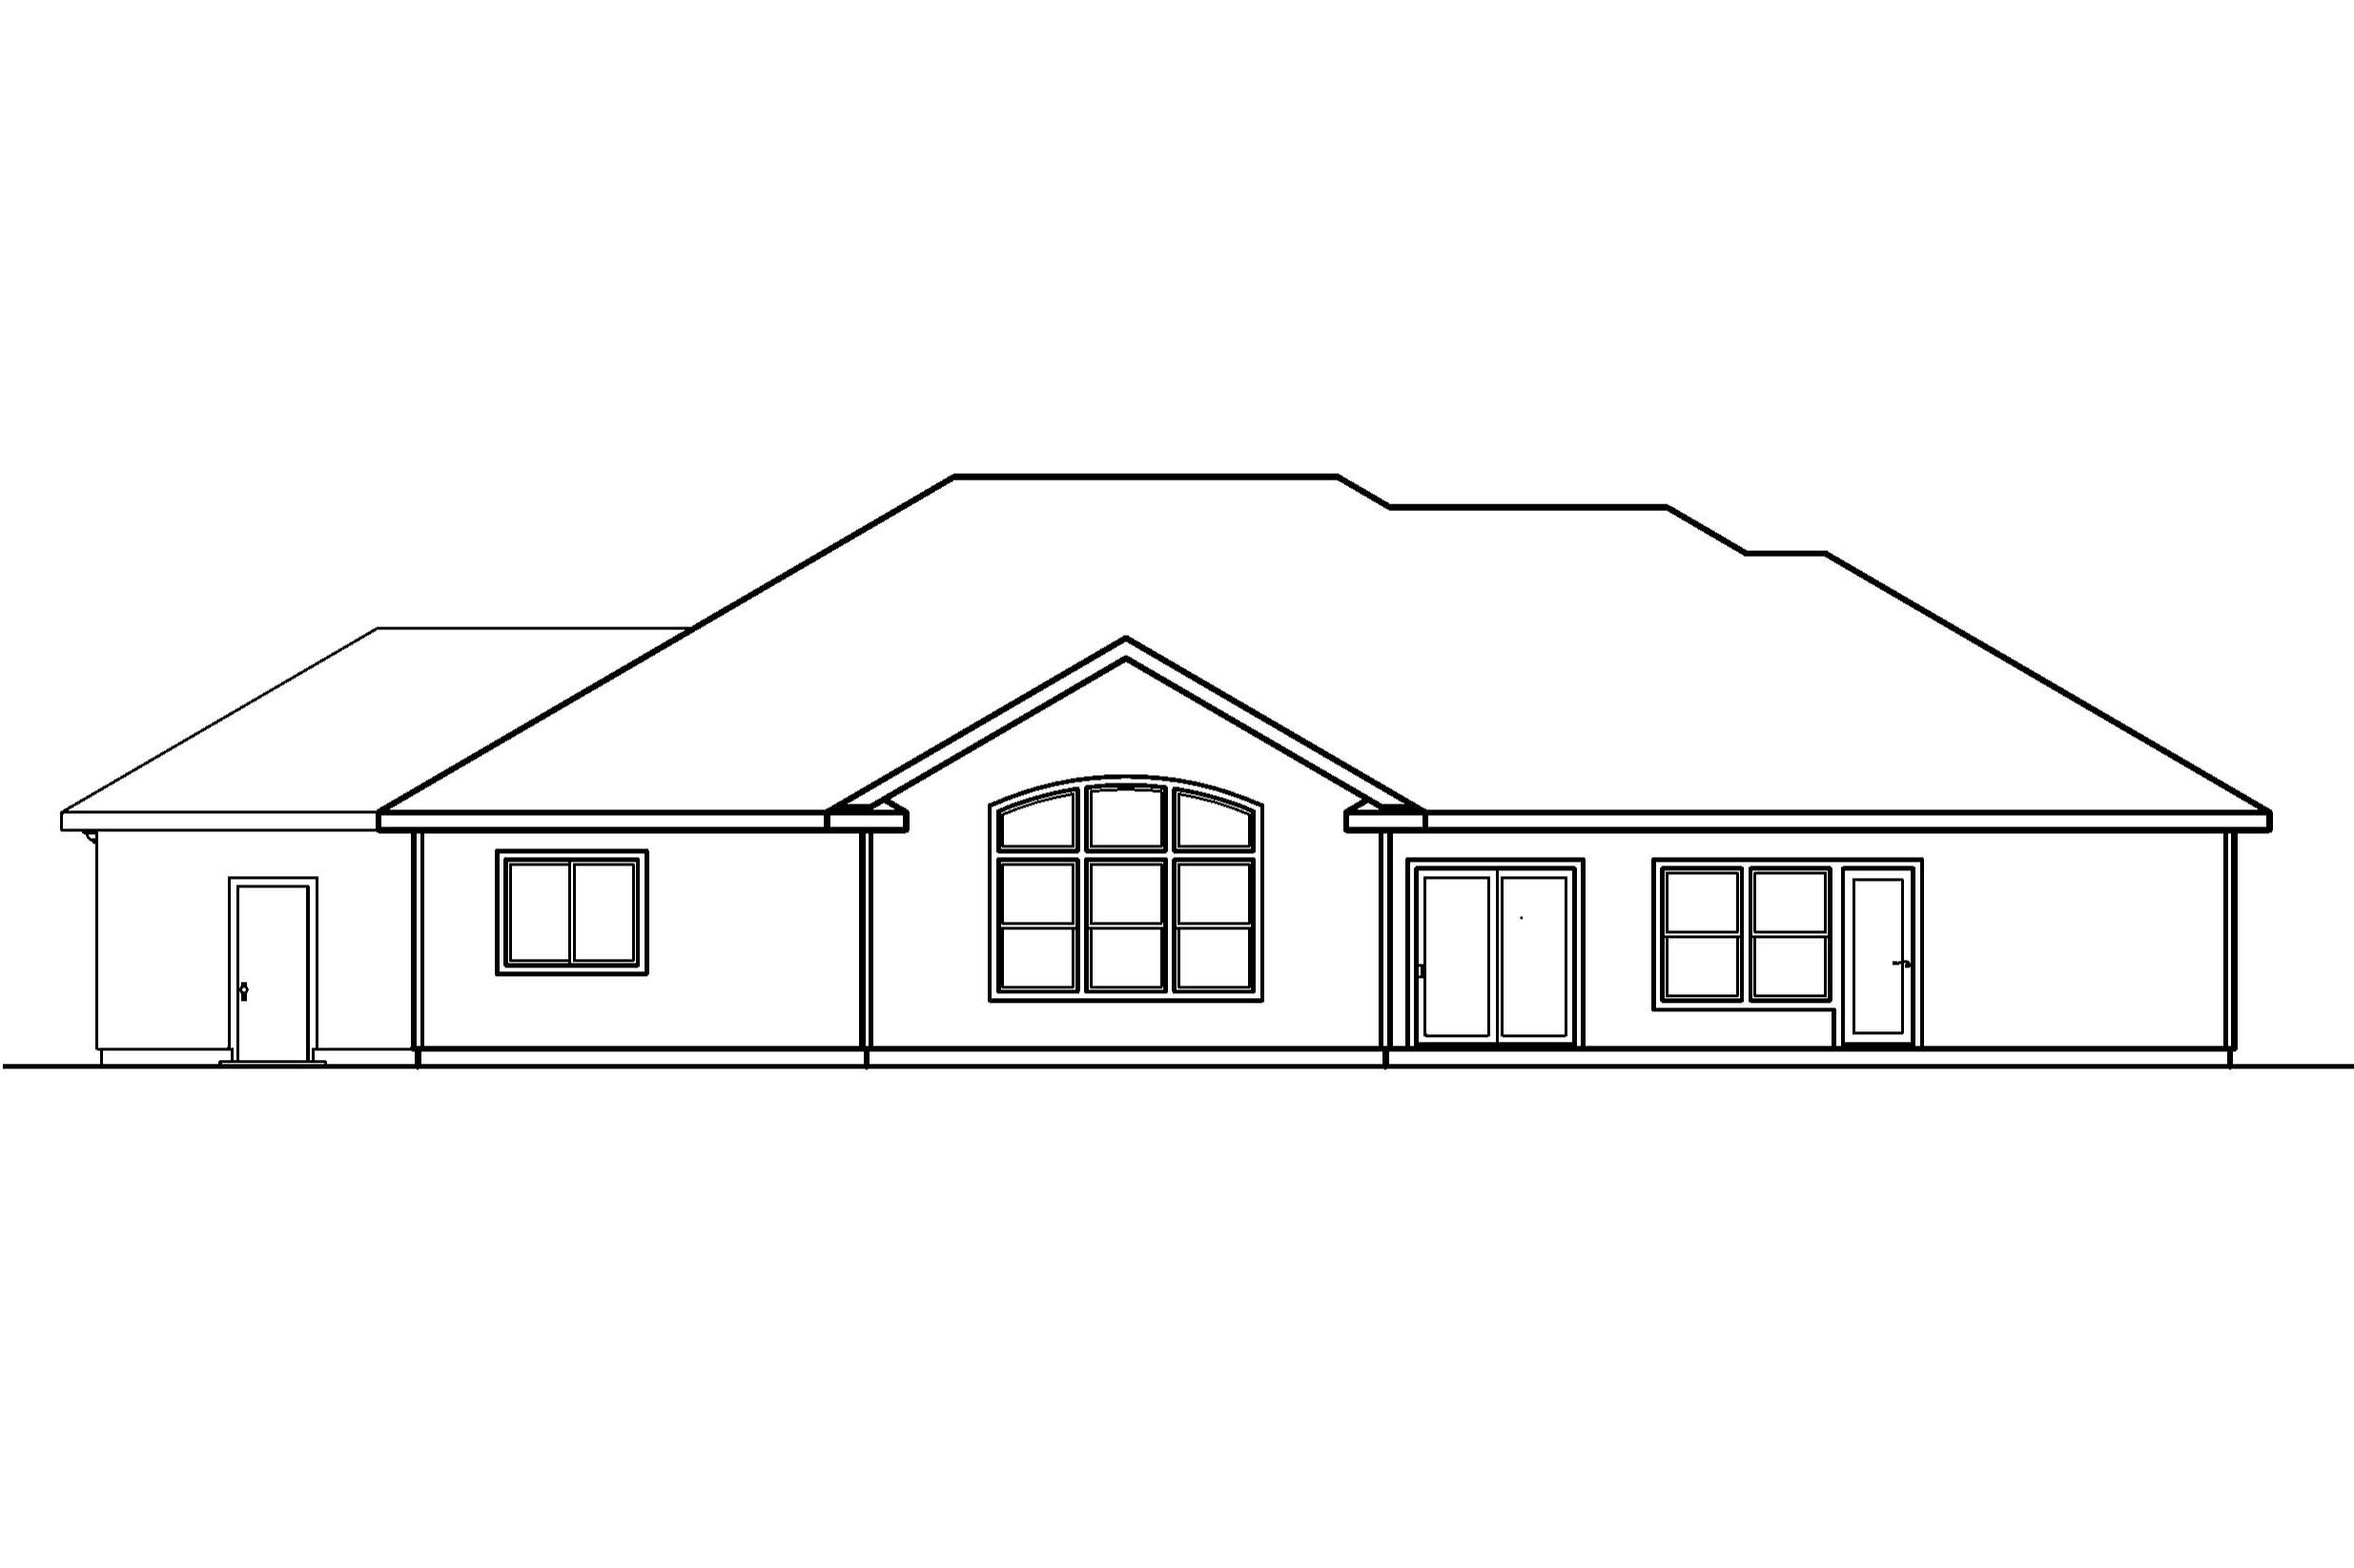 Plan For 27 Feet By 50 Feet Plot  Plot Size 150 Square Yards  Plan Code 1452 additionally Eco Contemporary House Plans also Floor Plan For Small 1200 Sf House With 3 Bedrooms And 2 Bathrooms further Direction together with Craftsman Style Lakefront Home Plans. on vastu for house number